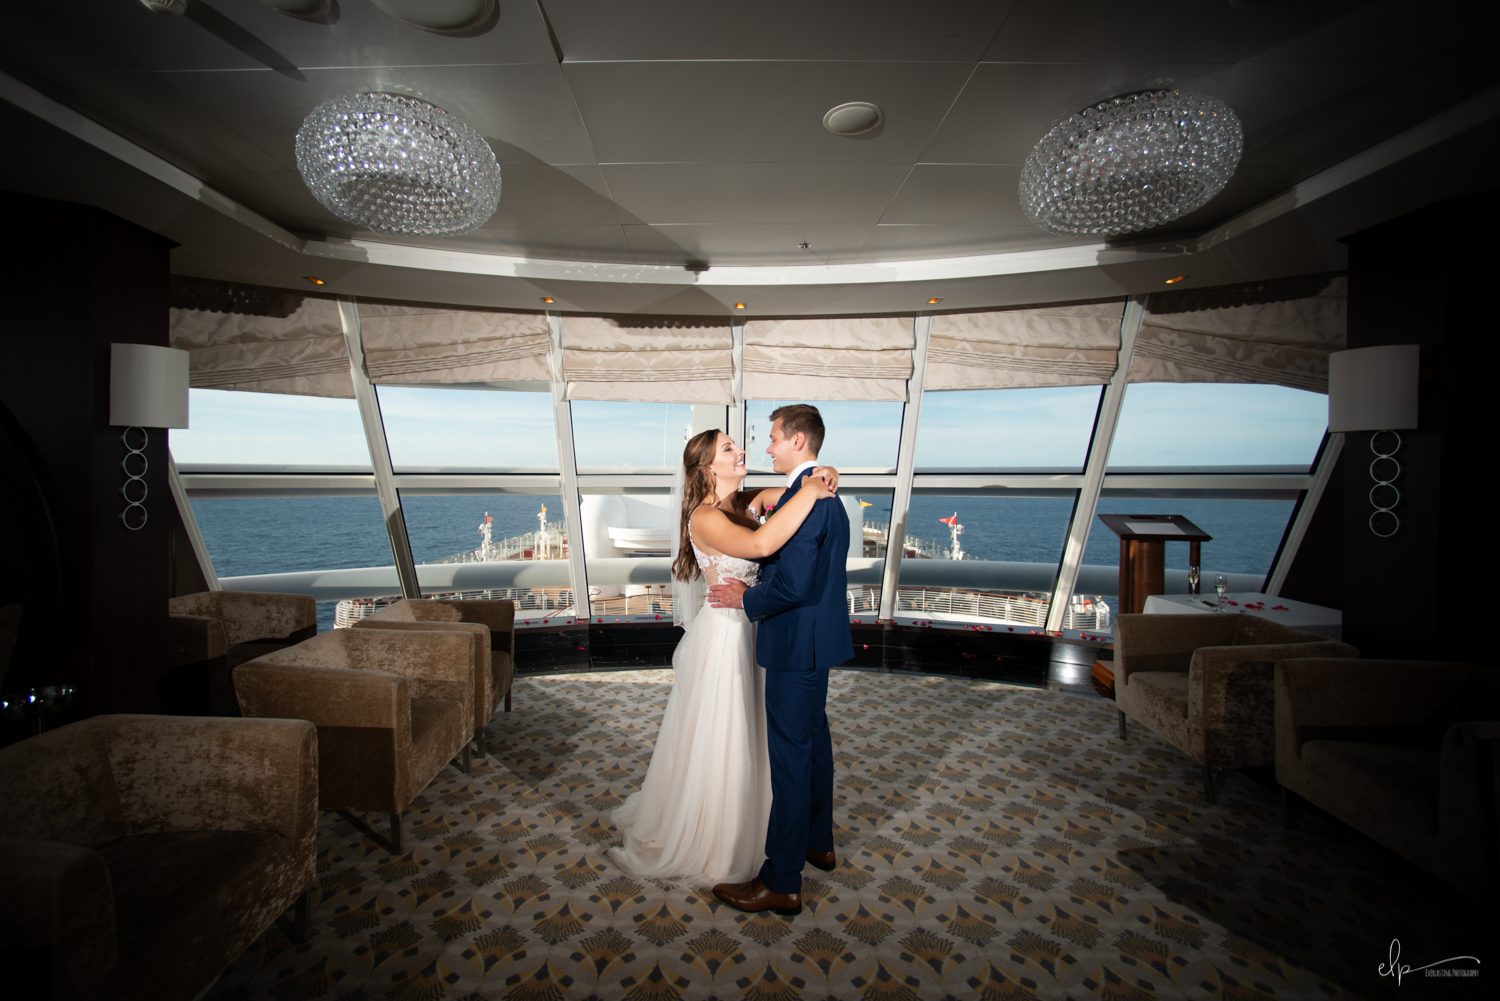 wedding photos in outlook lounge on disney cruise line